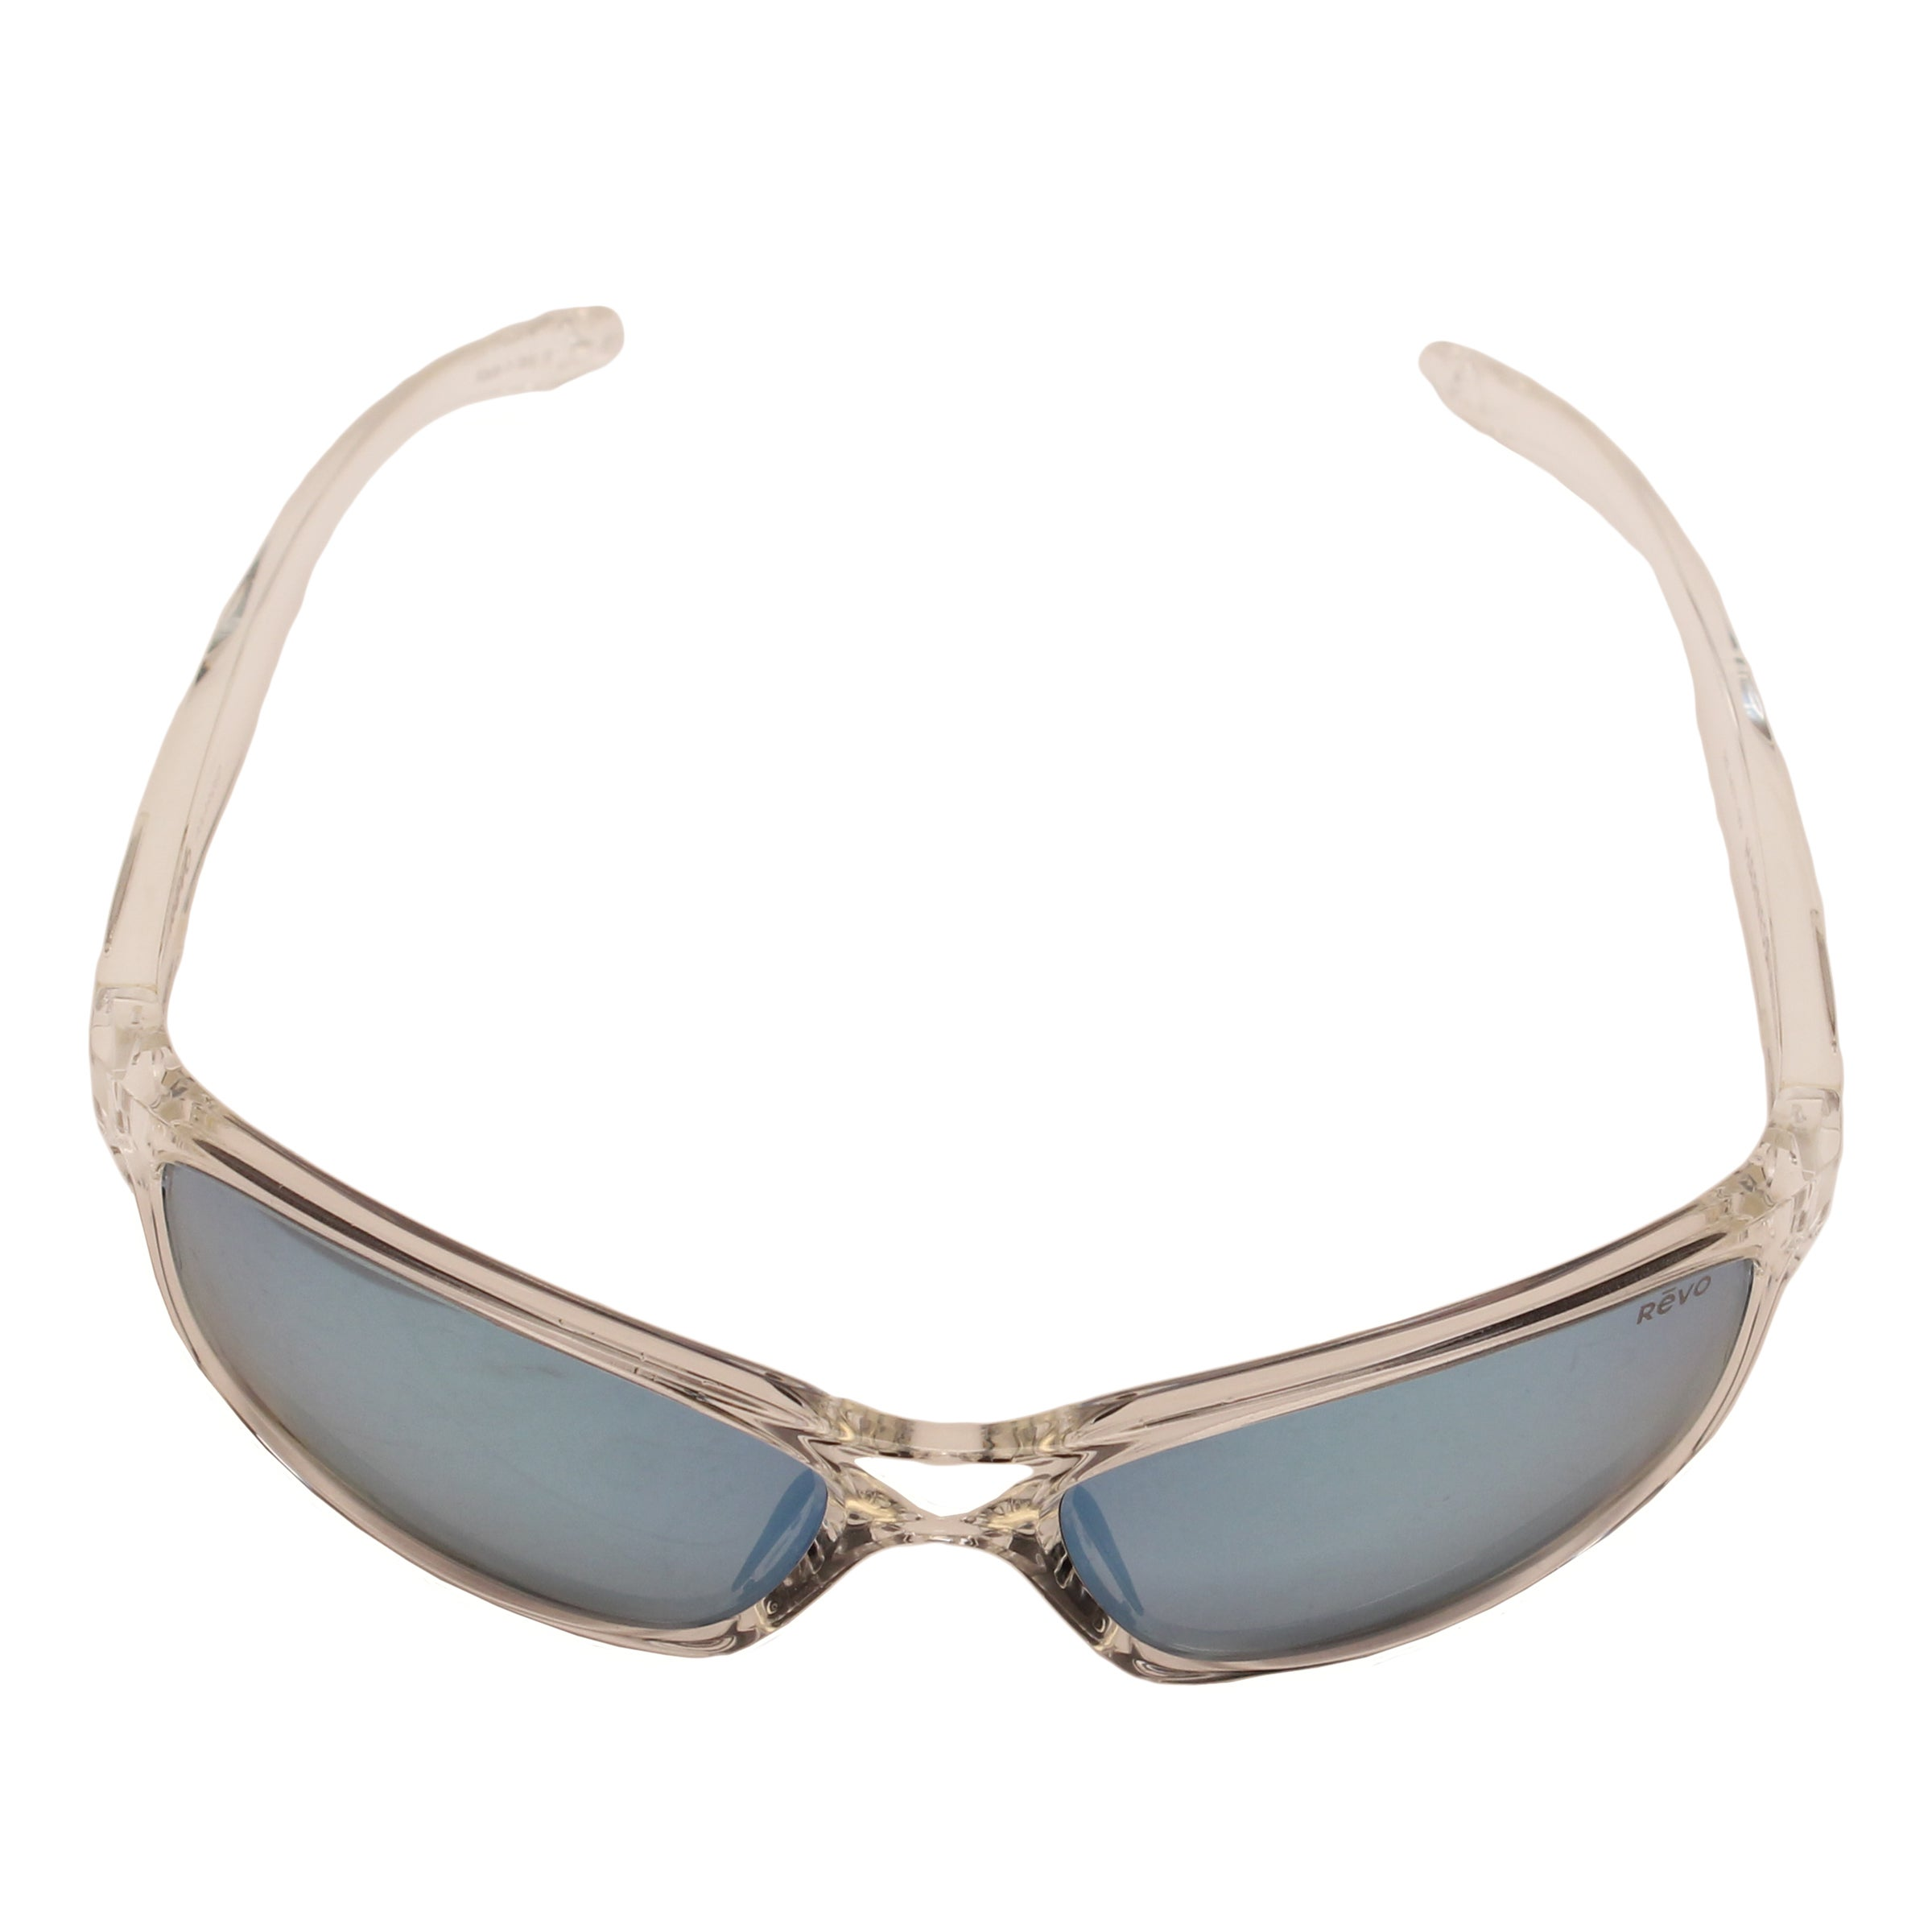 e202caf965 Shop Revo Men s RE 4071 09 BL Harness Sunglasses with Crystal Frames and  Blue Water Serilium Lenses - Free Shipping Today - Overstock - 12484829